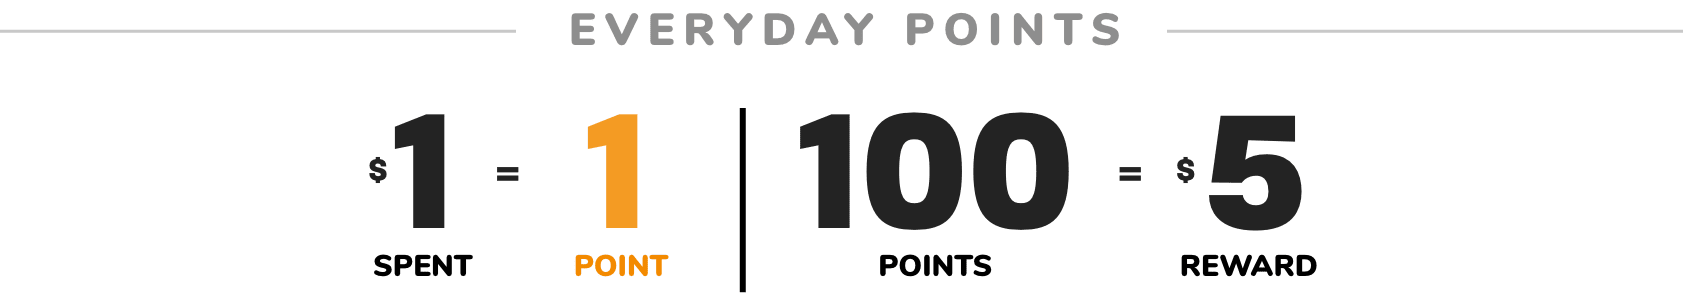 DOUBLE POINTS | EVERYDAY POINTS